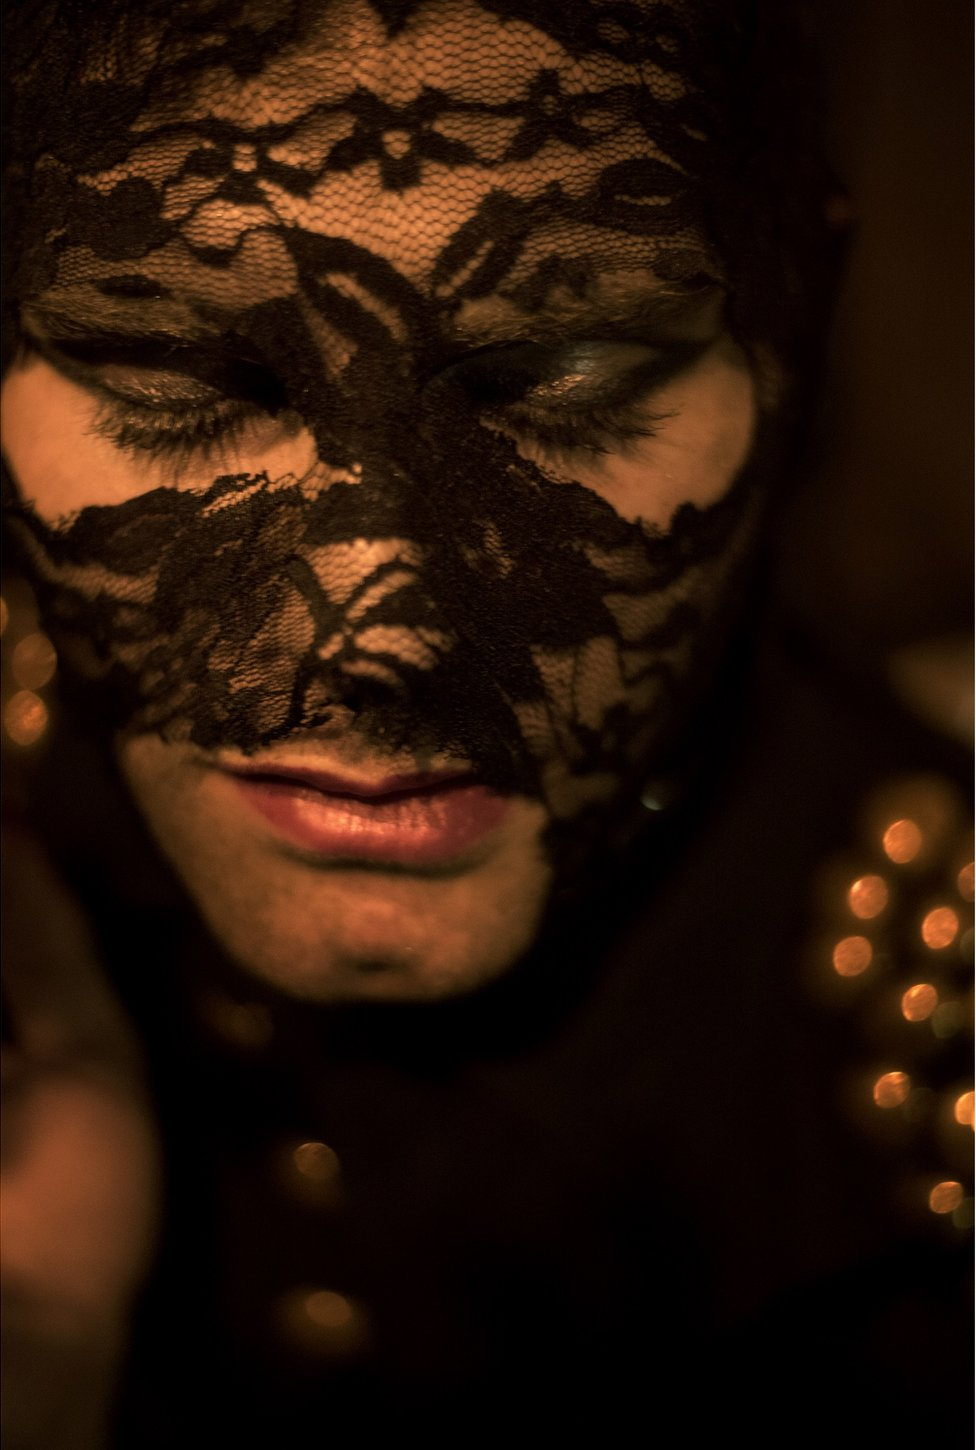 Elias poses with lace over his face